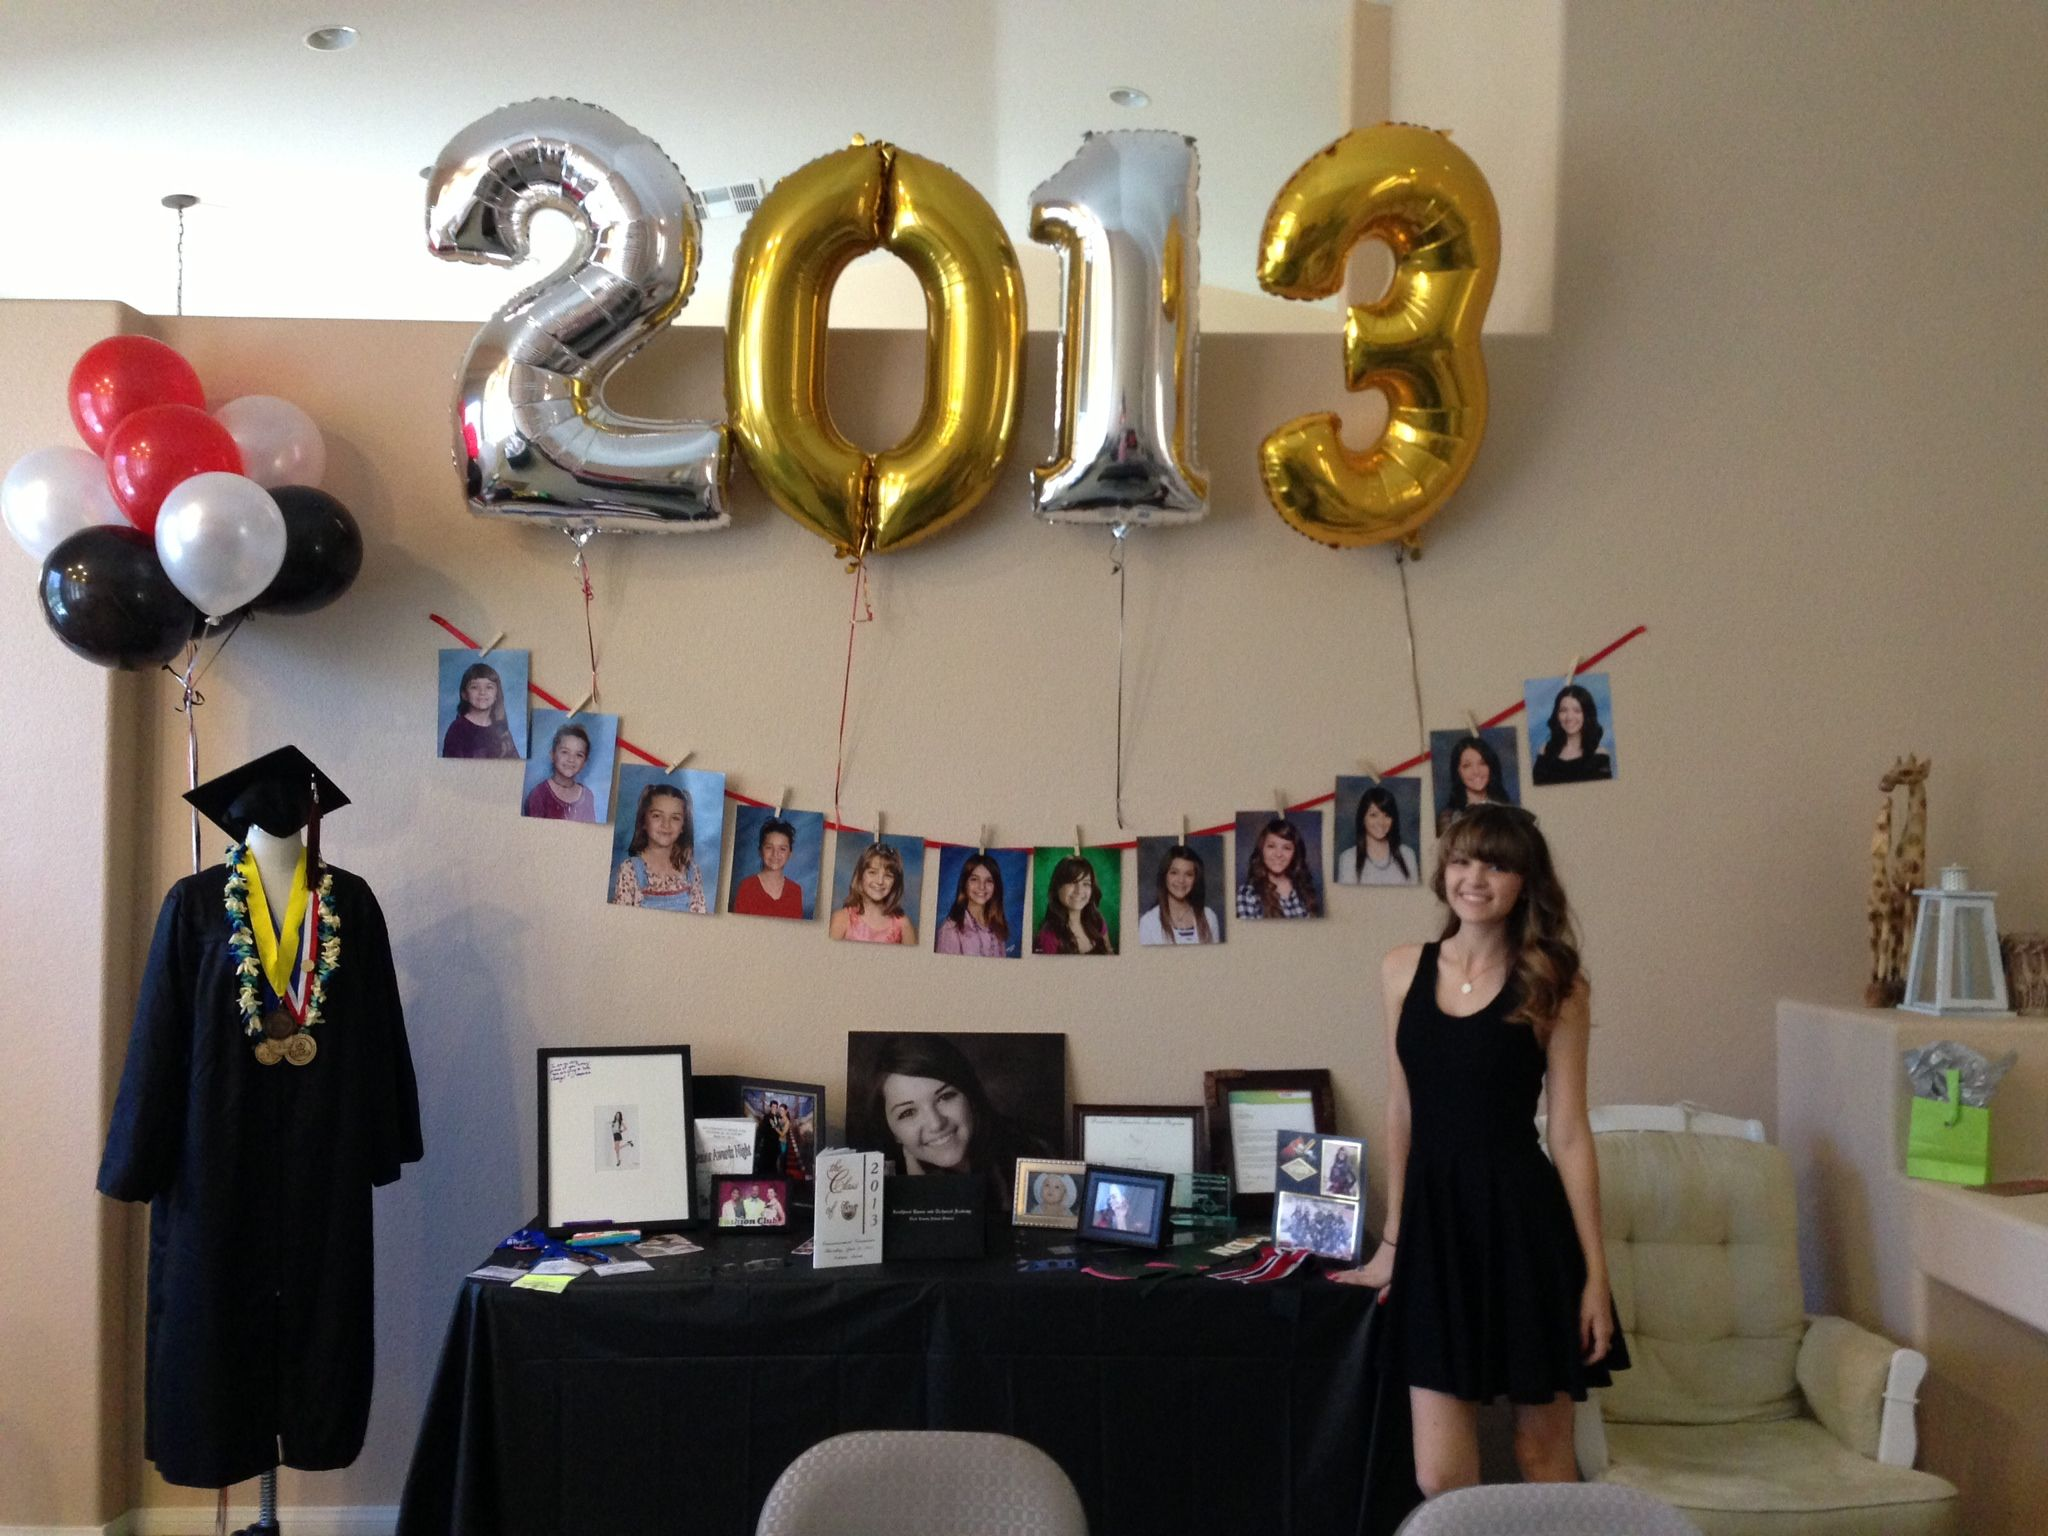 Graduation party decoration ideas & Graduation party decoration ideas | DIY | Pinterest | Decoration ...